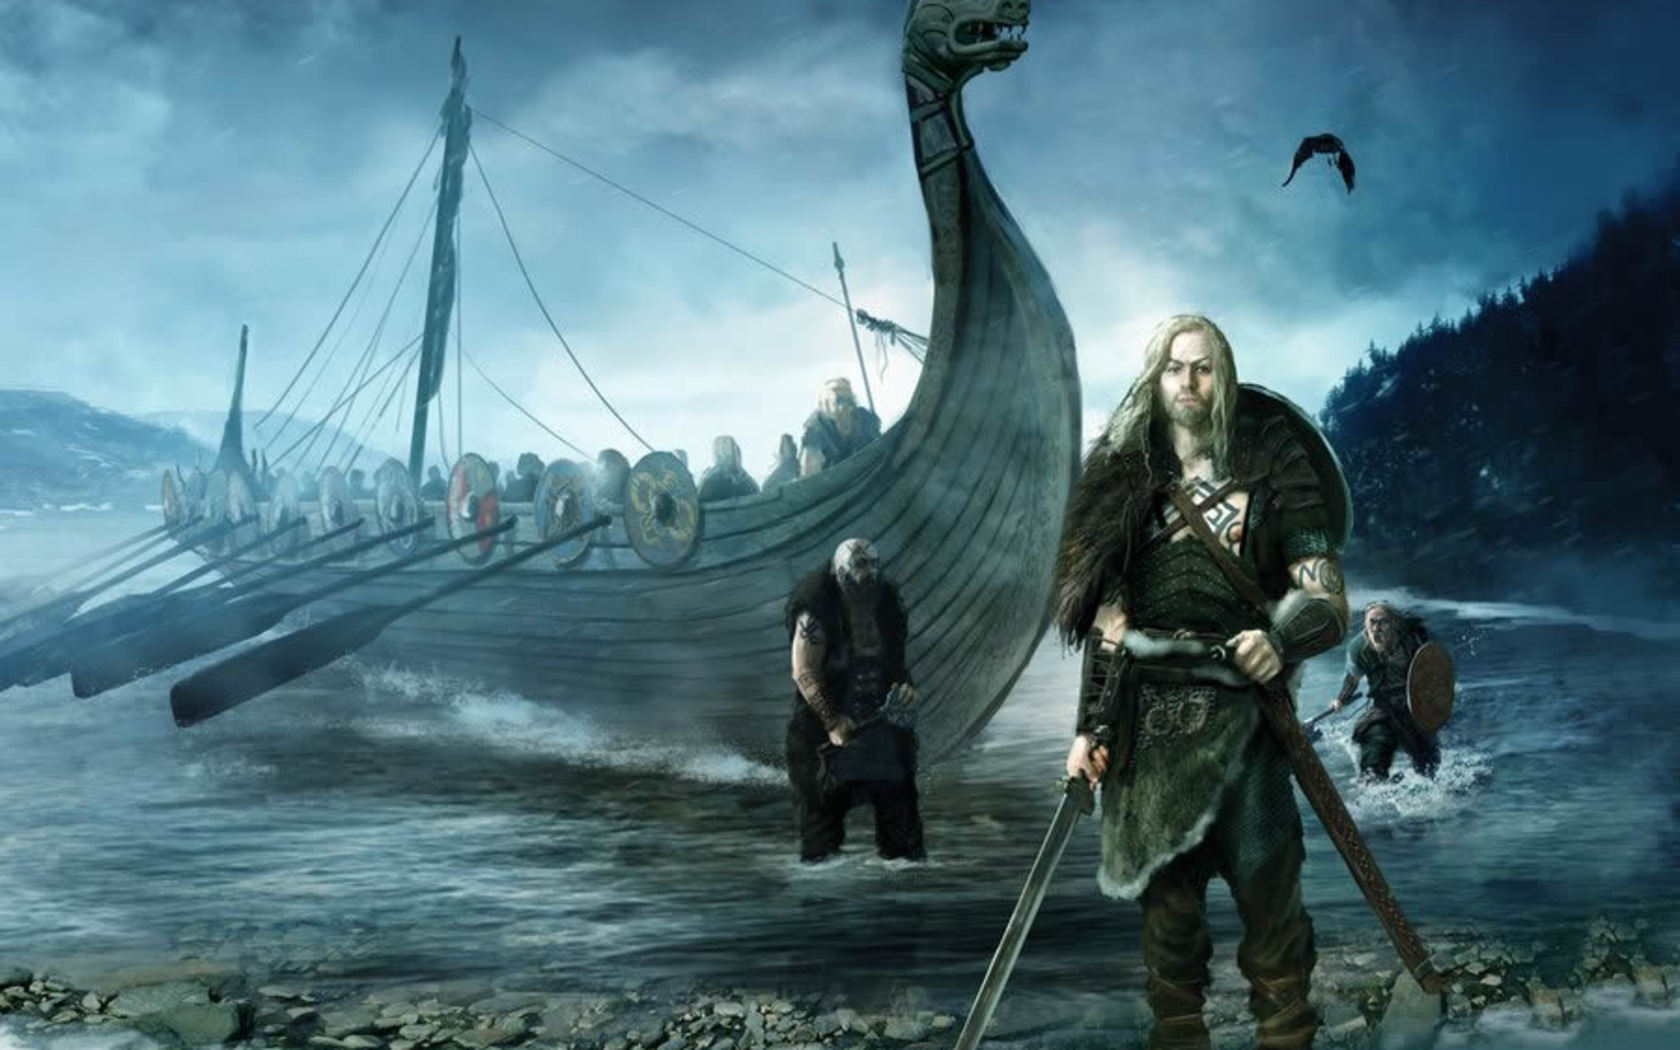 Ultra HD Viking 4K Wallpapers 1680x1050 download on 1680x1050